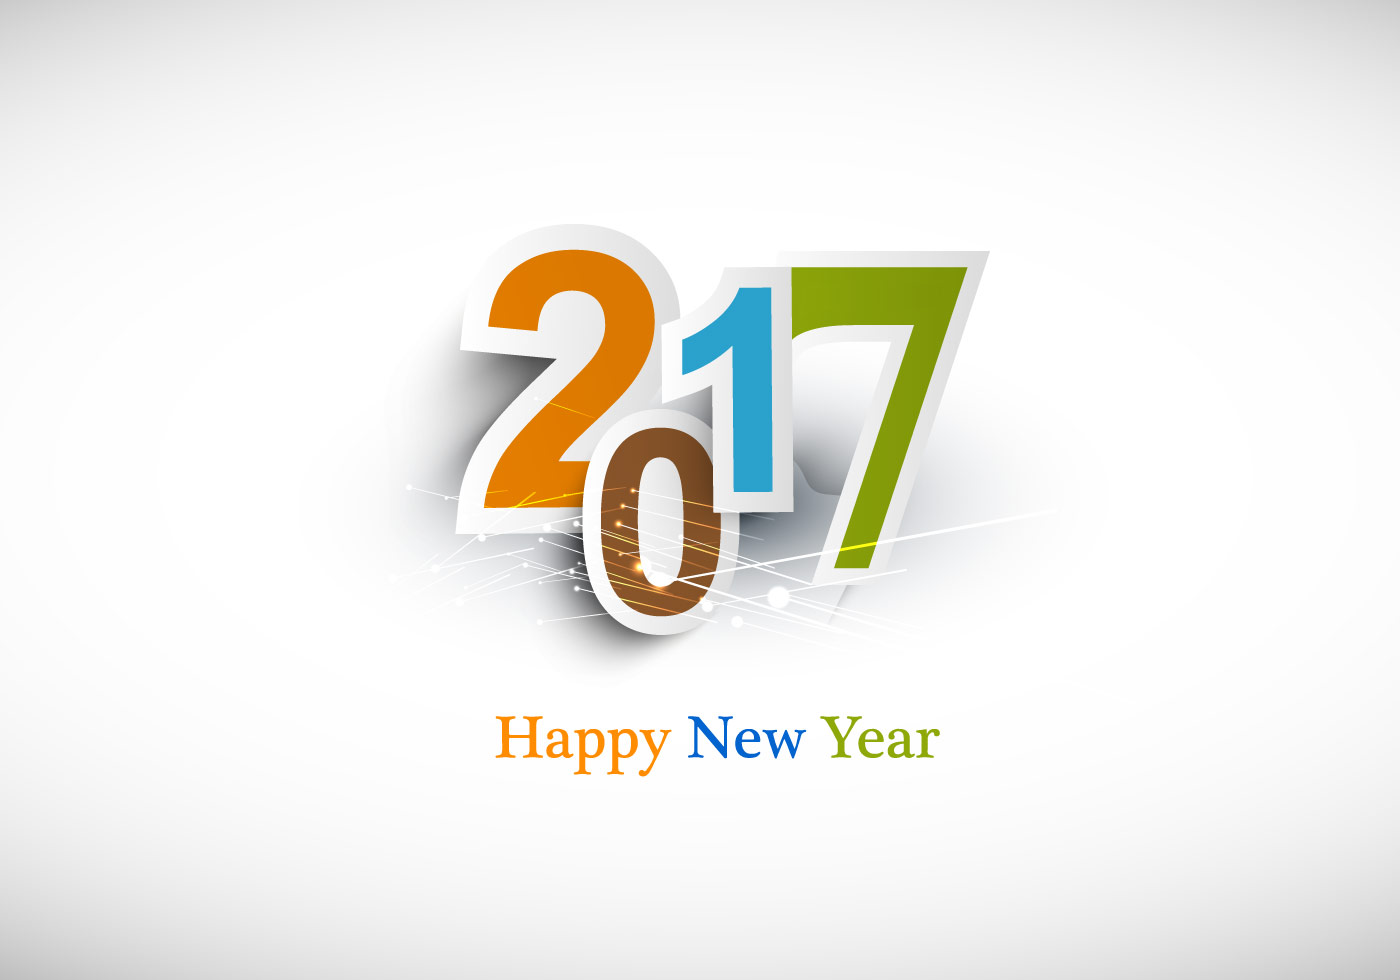 Happy New Year 2017 Text Design - Download Free Vector Art ...